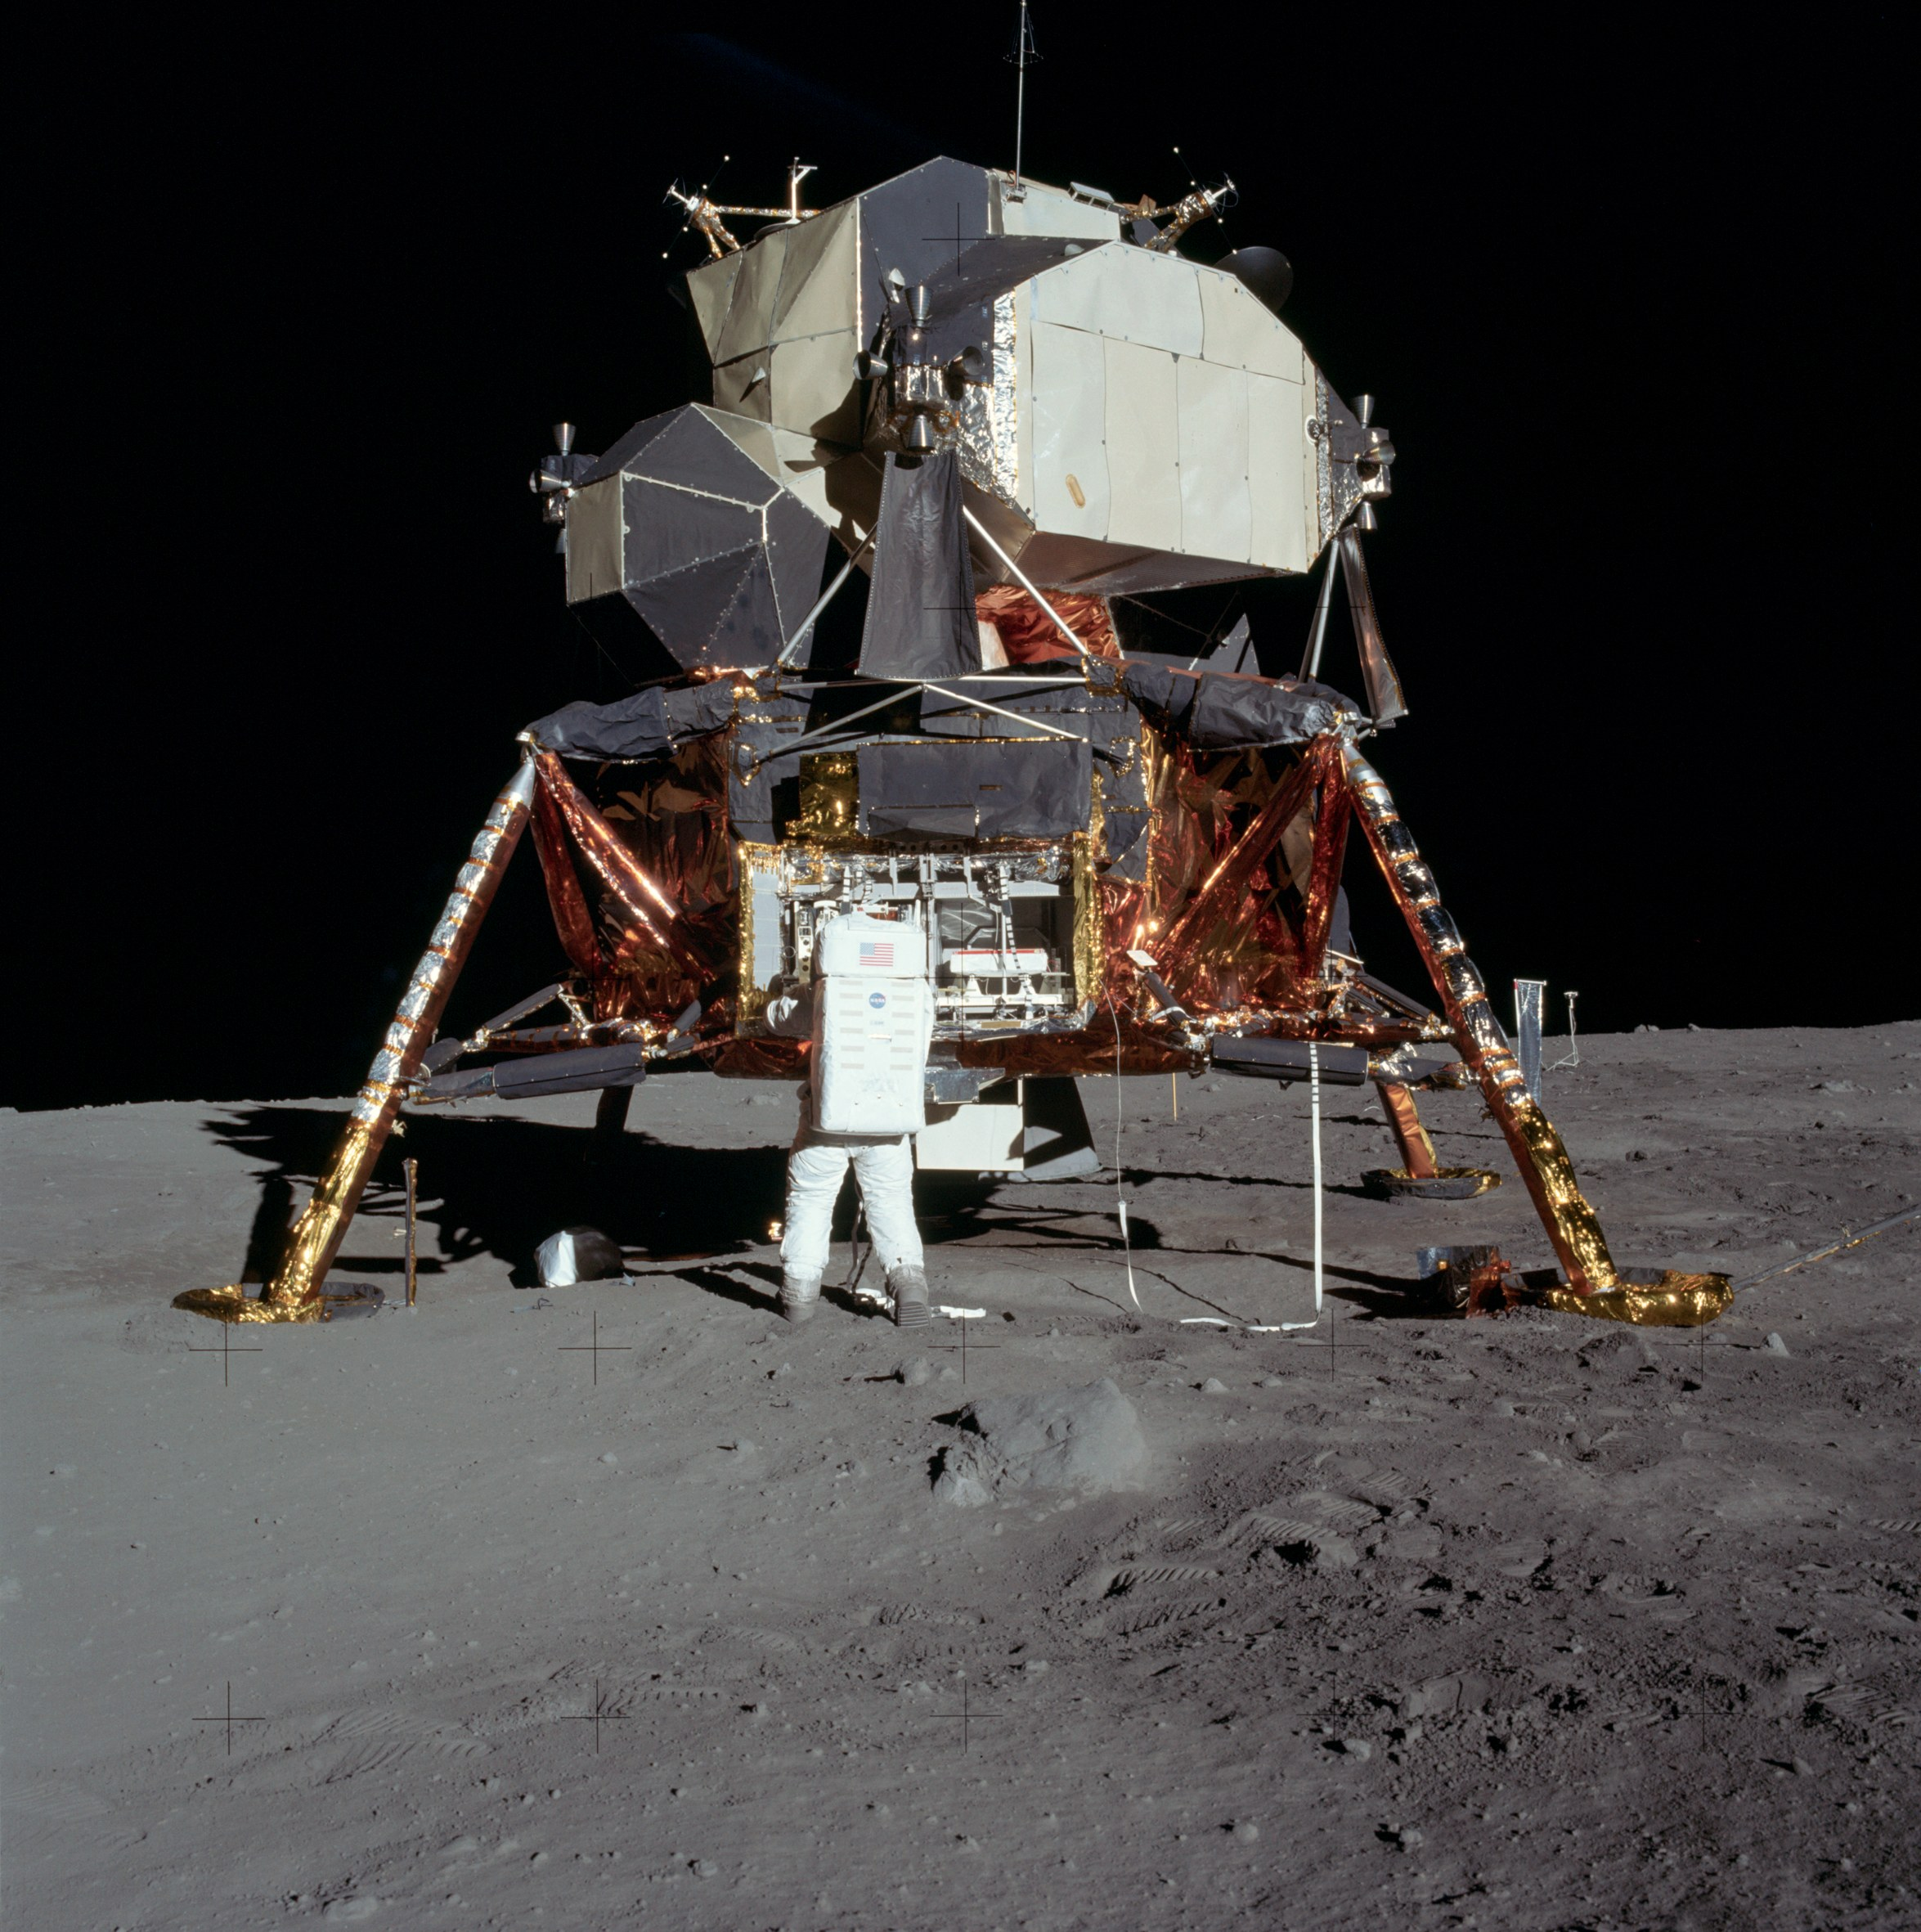 copy_of_apollo_11_lunar_lander_5927_nasa.jpg